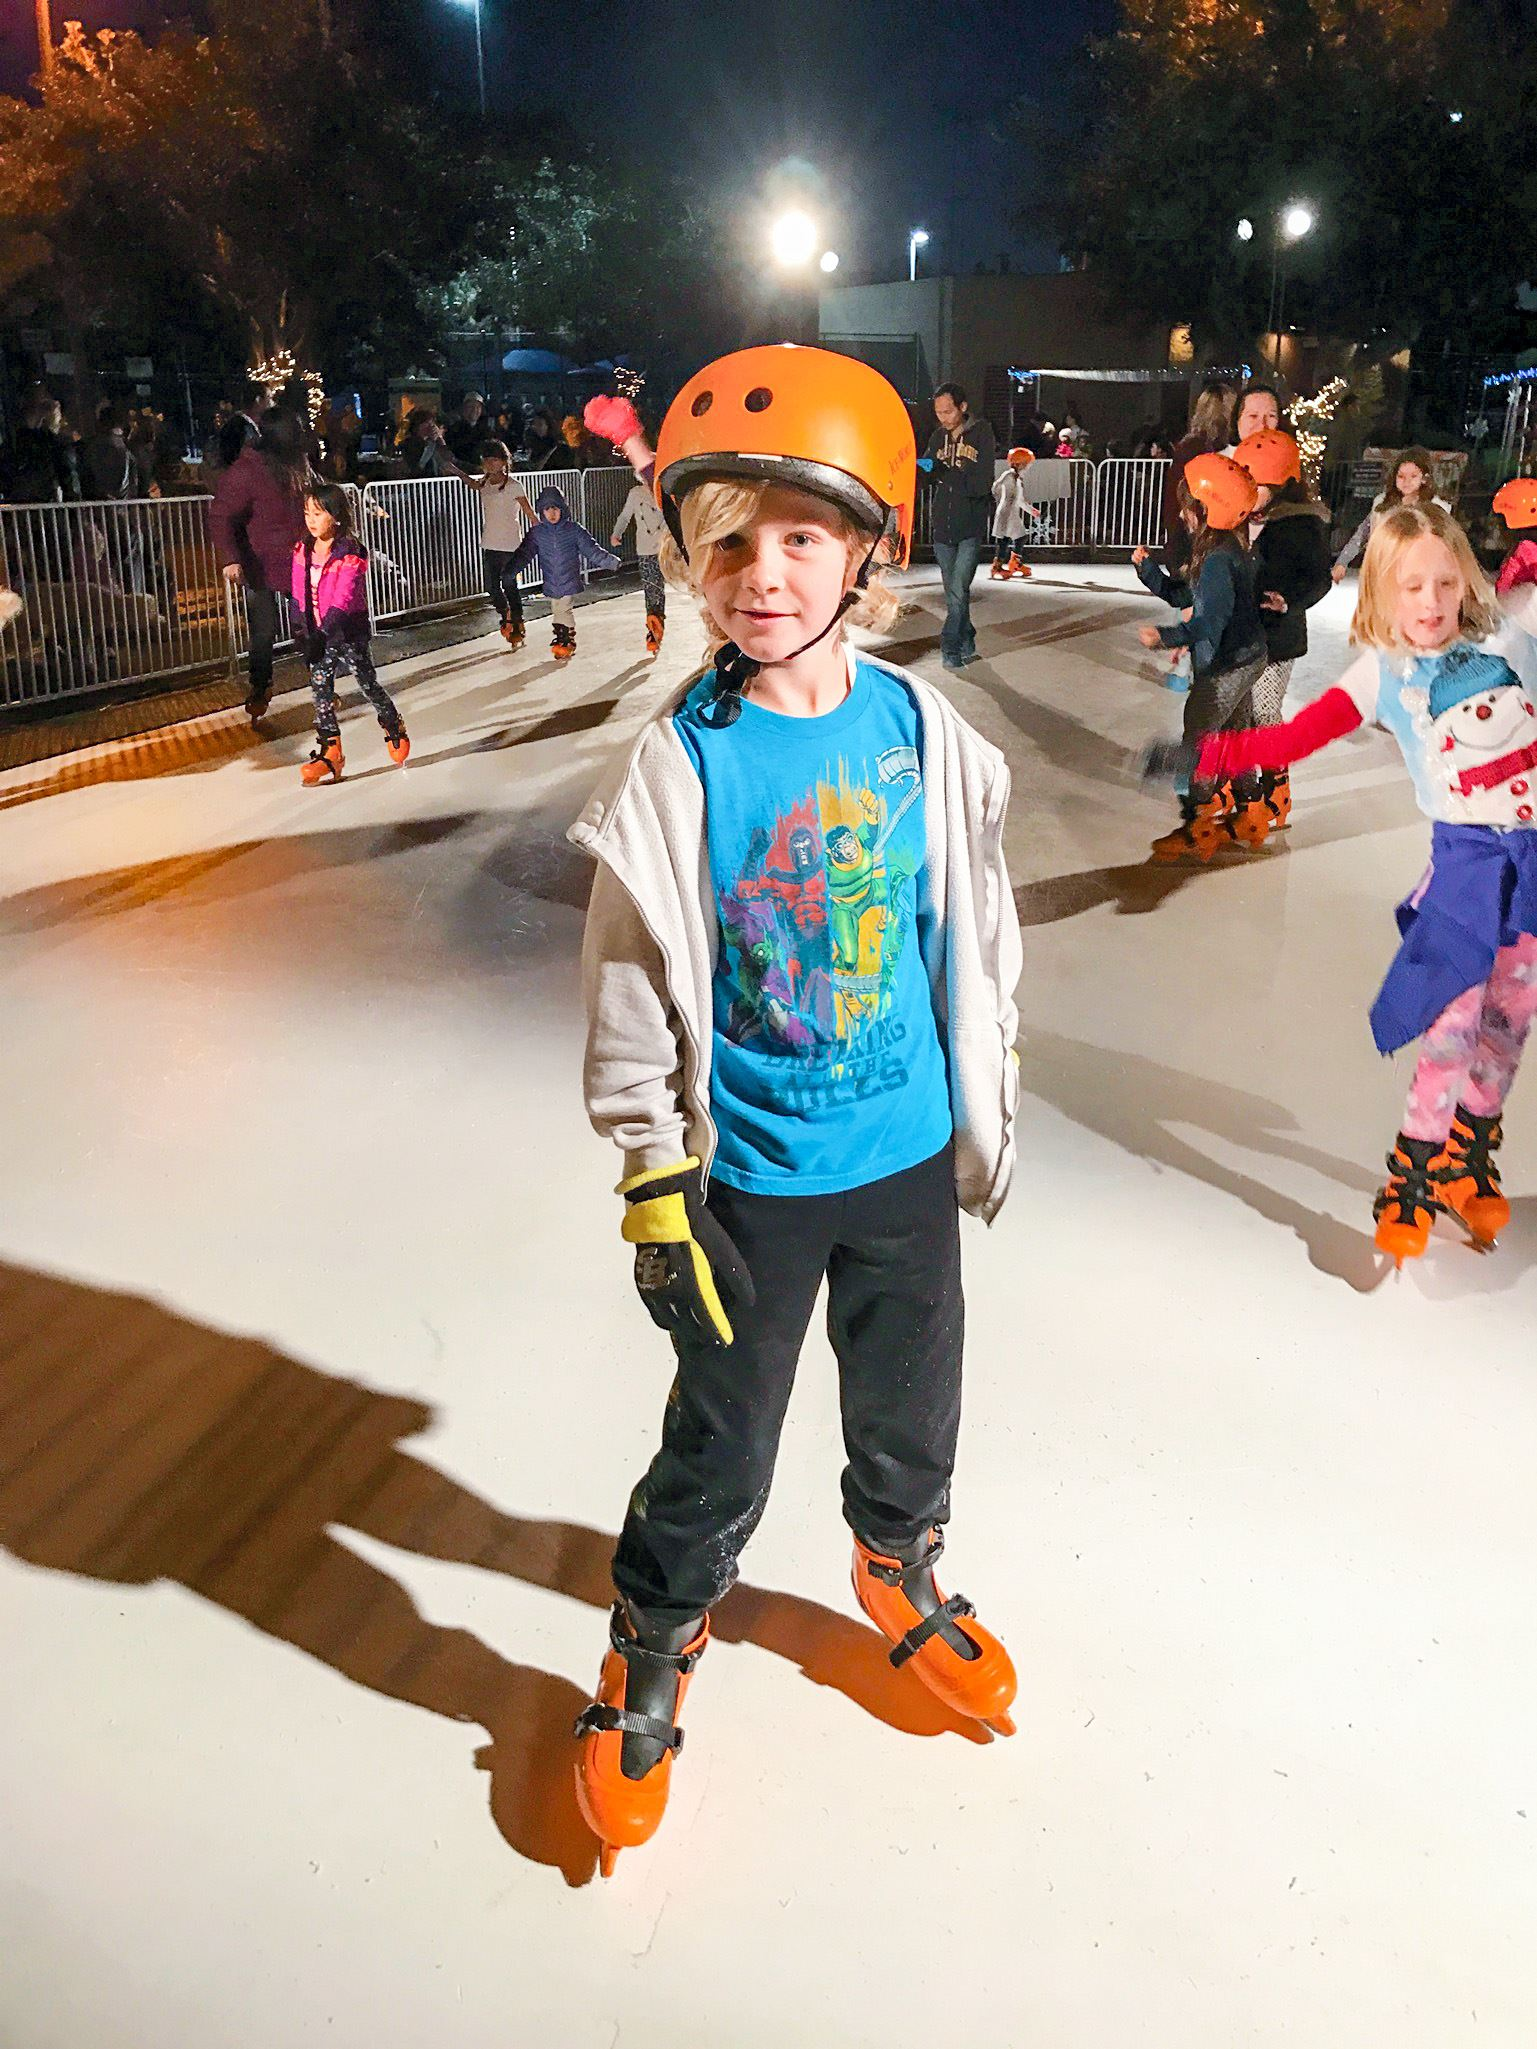 Winter Festival Kid Skating on Ice Rink 2018 January Poway Community Park FREE Family Youth Teen Fun